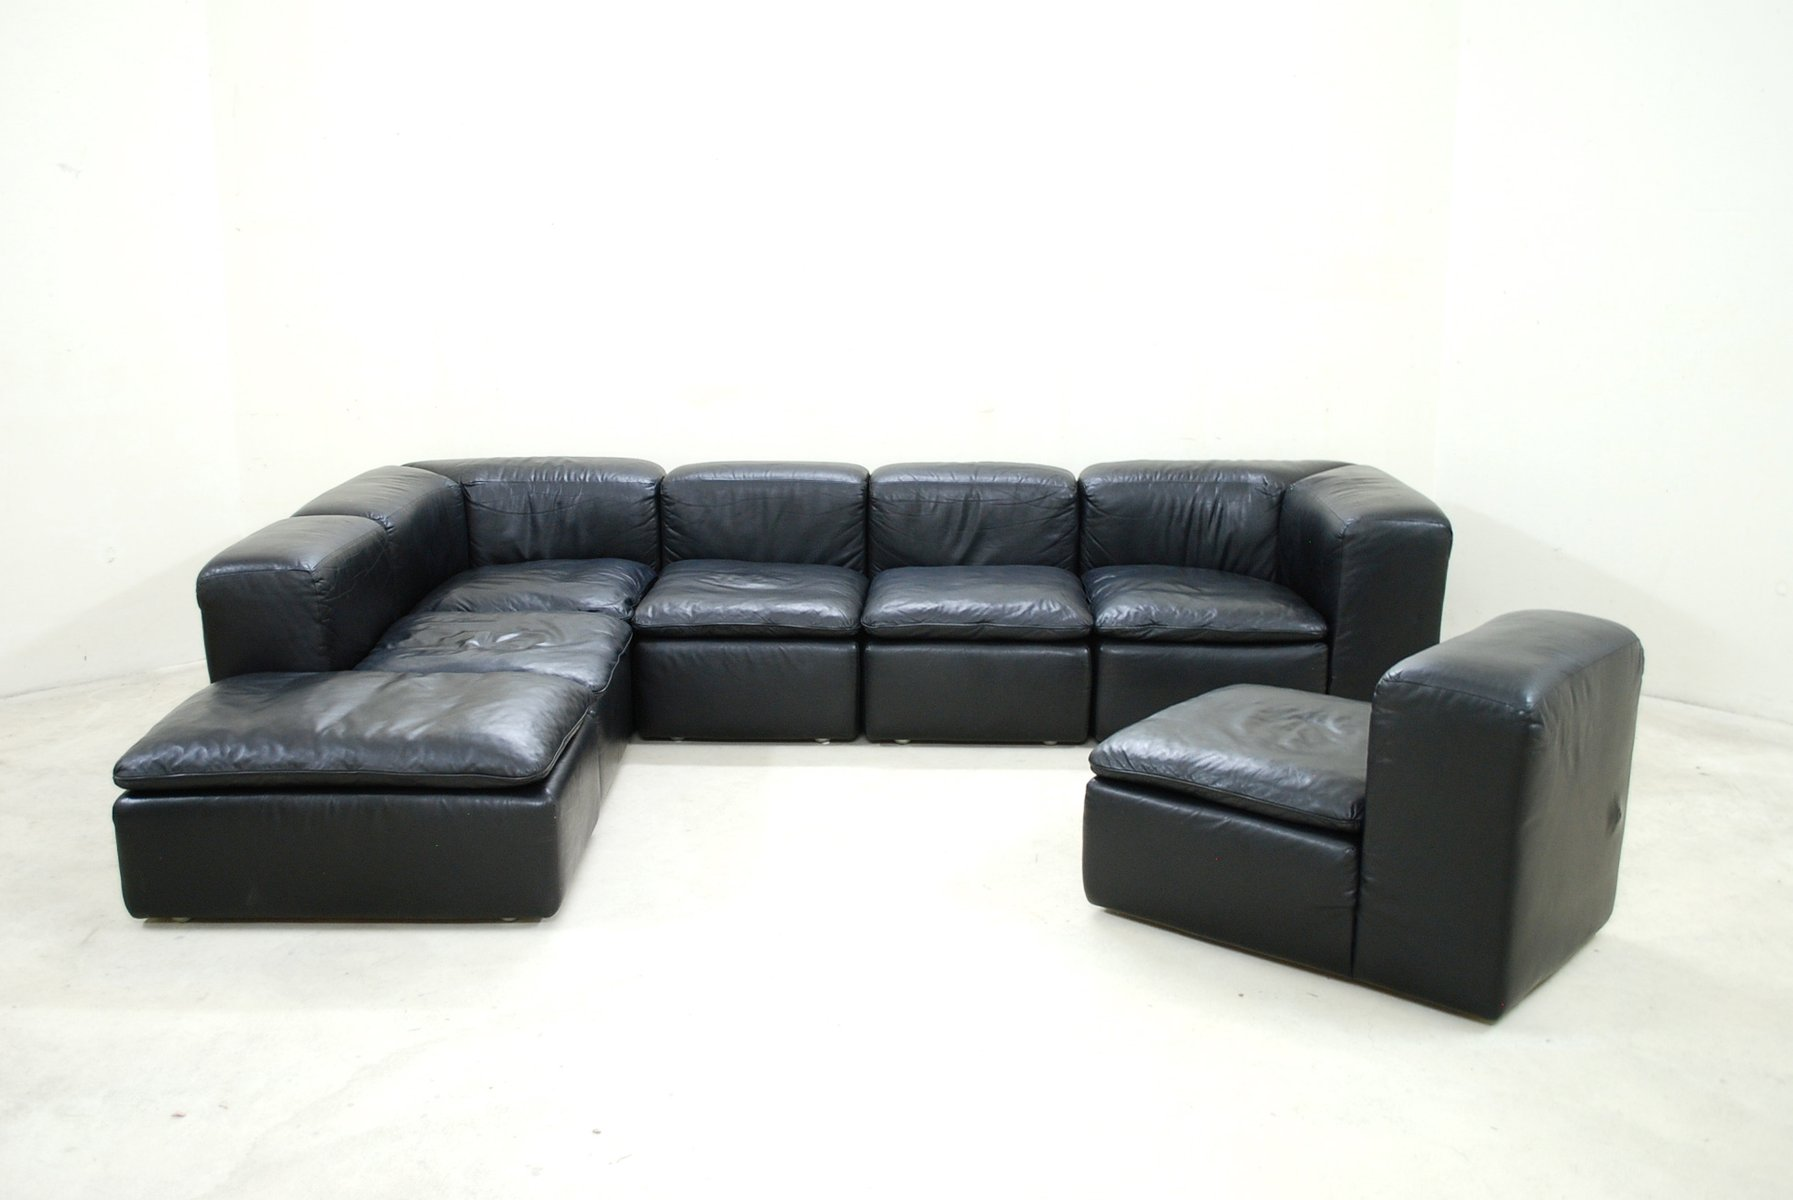 modular leather sofa kivik sectional 6 seat grann bomstad dark brown ikea thesofa. Black Bedroom Furniture Sets. Home Design Ideas